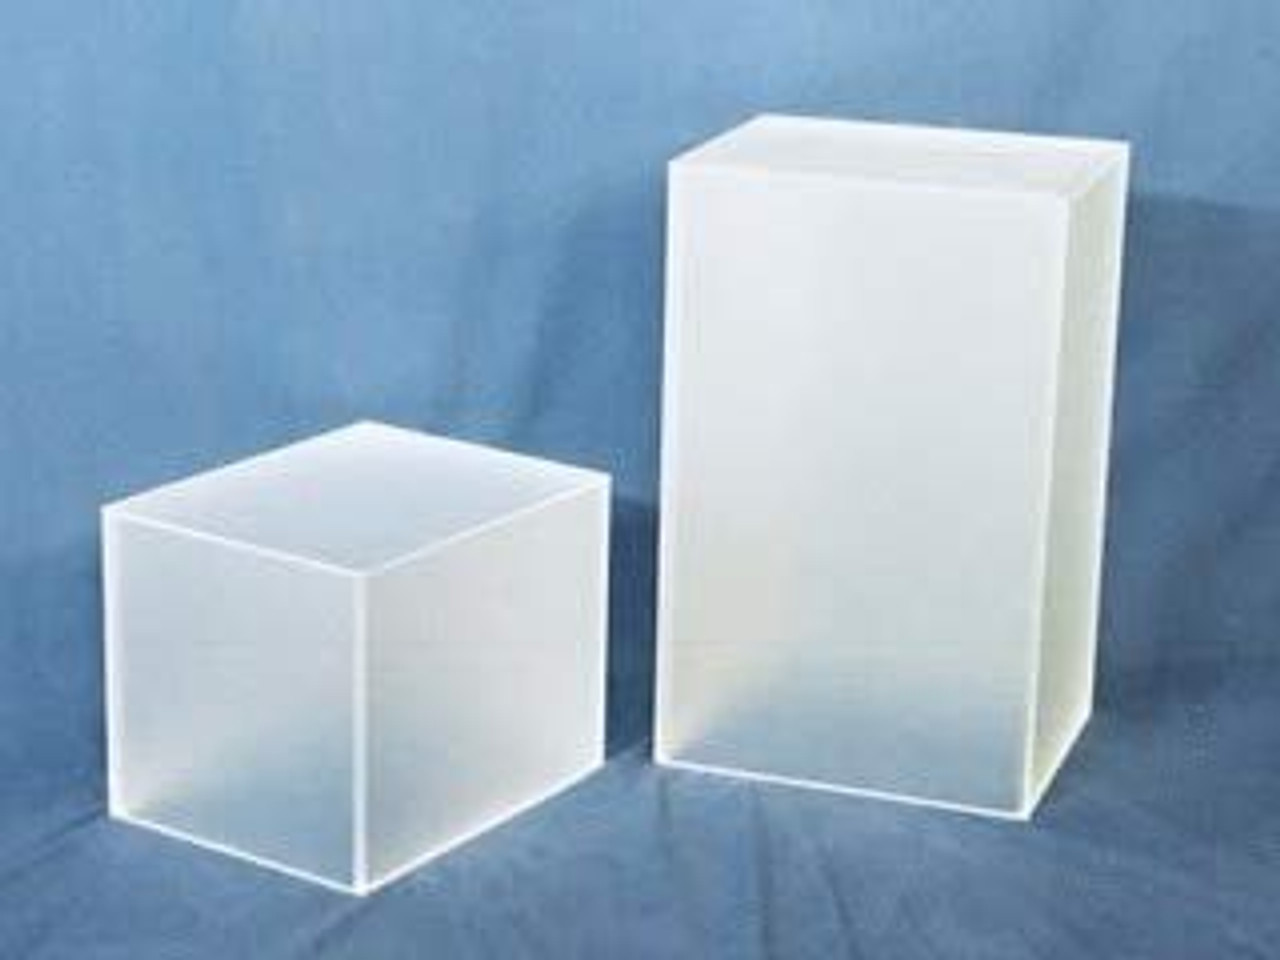 Clear Stands Rectangular Acrylic Display Cube, Frosted Finish, White, 12 Inch